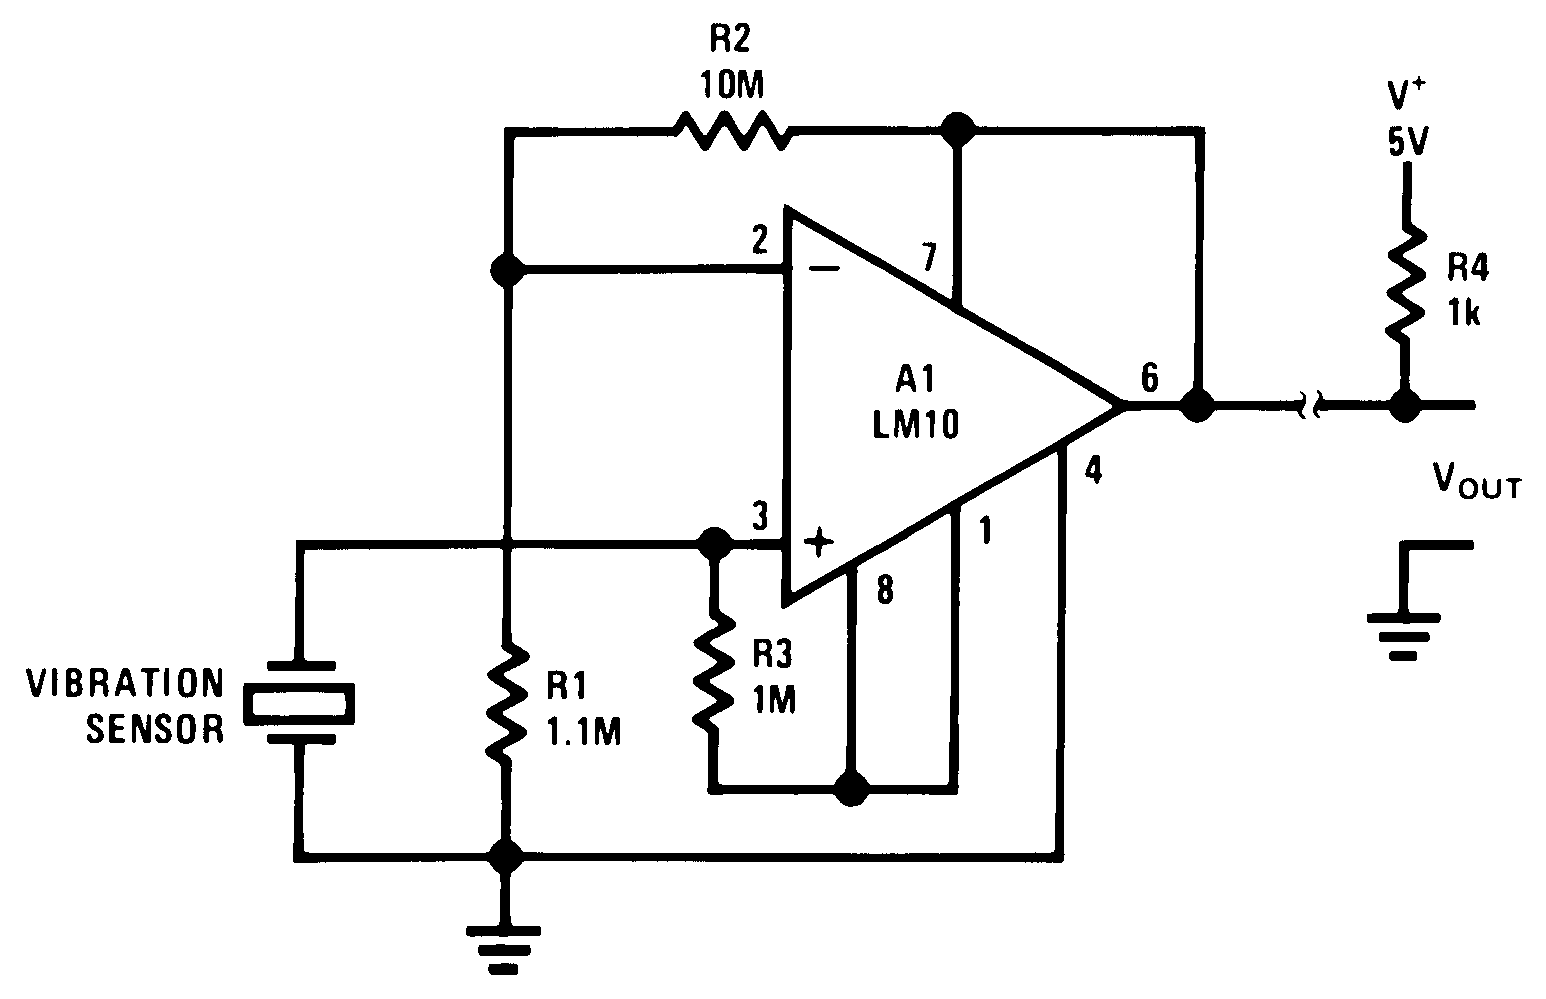 Schematic Diagram 500 Watts Amplifier Lm10 00565266